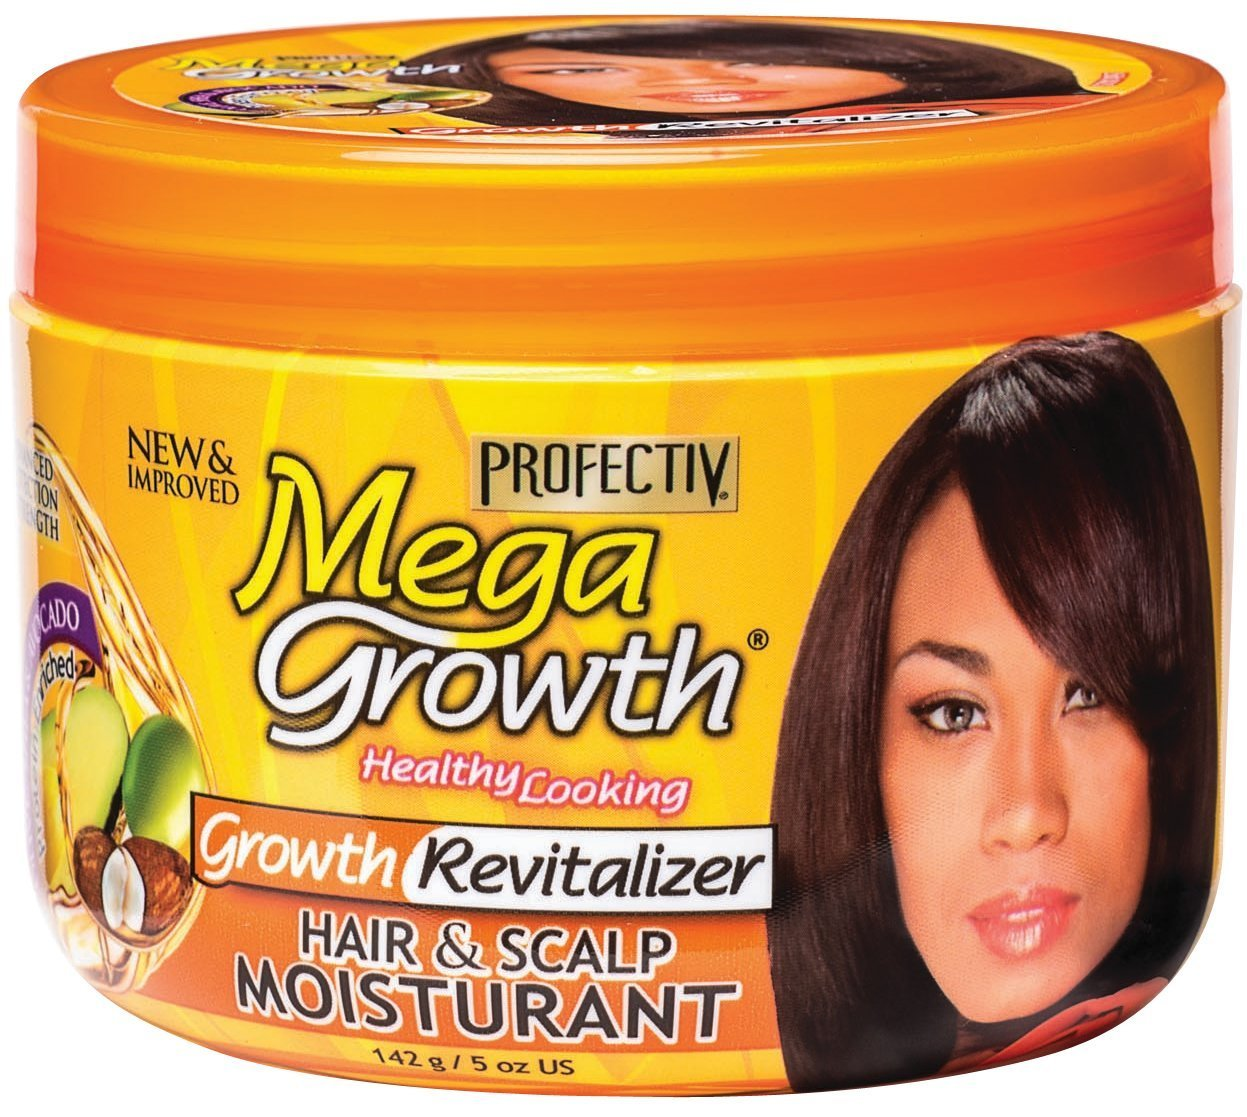 Profectiv mega growth growth revitalizer